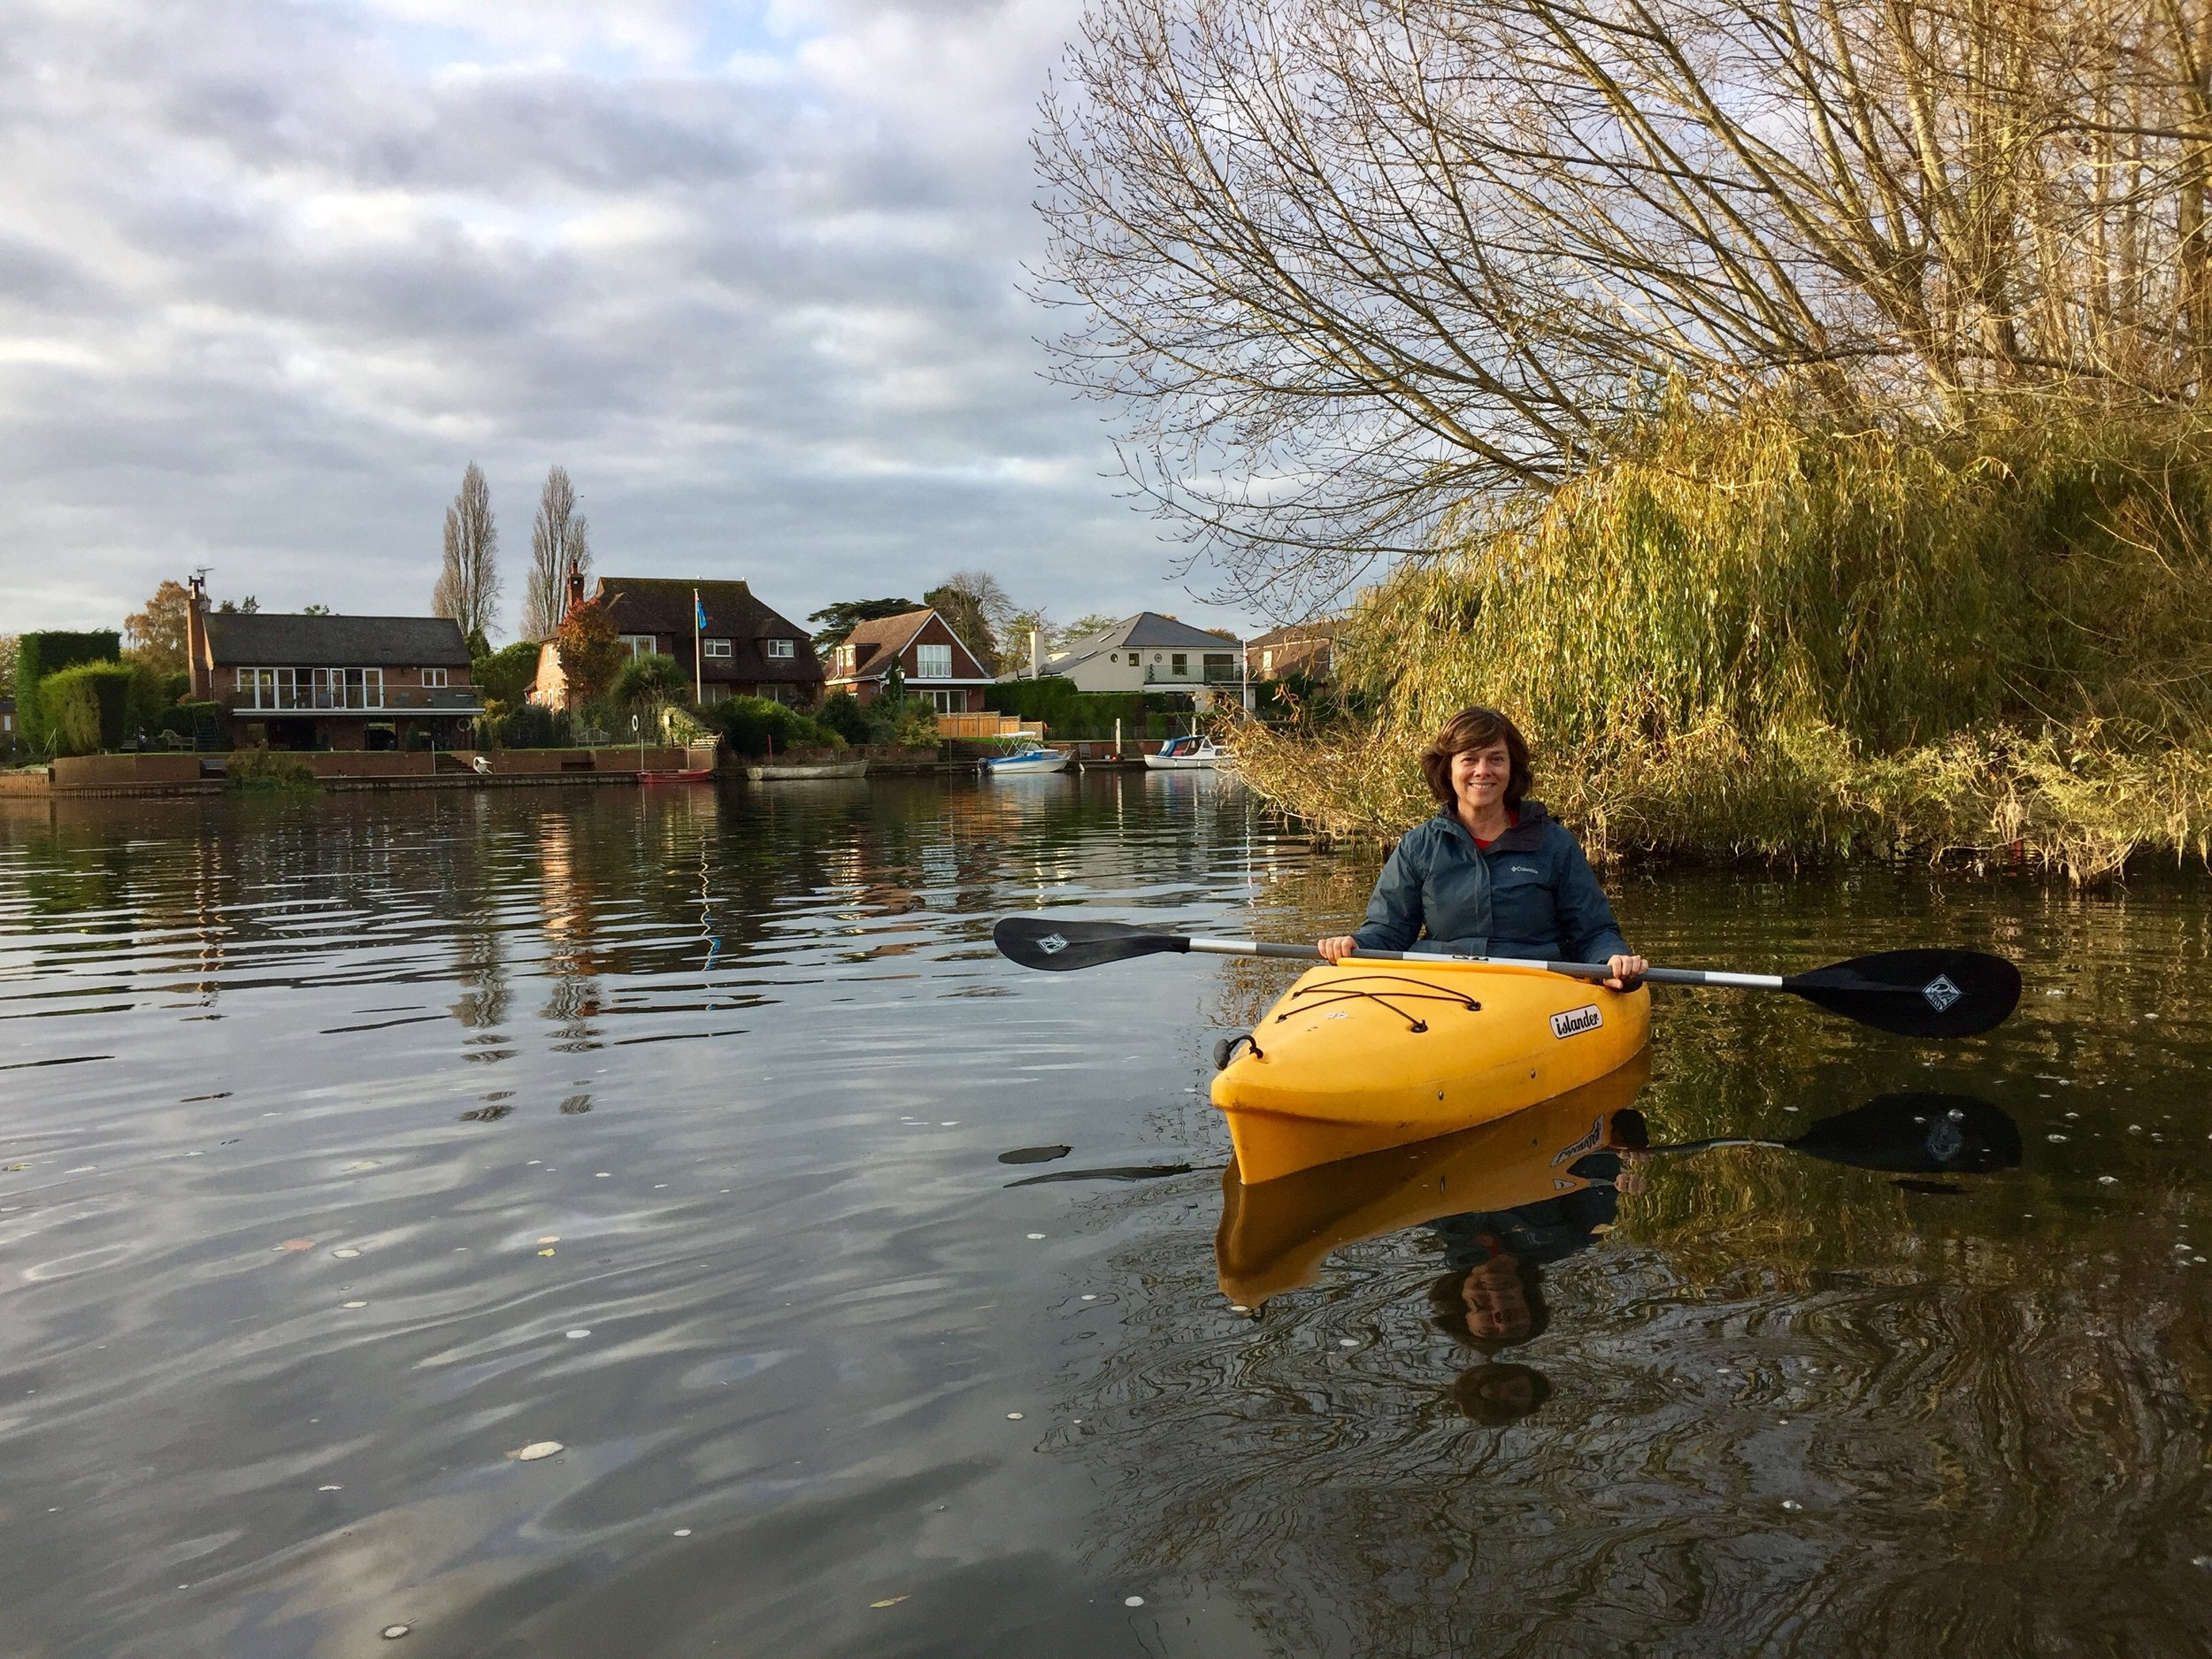 Kayaking on the Thames near our Workaway home